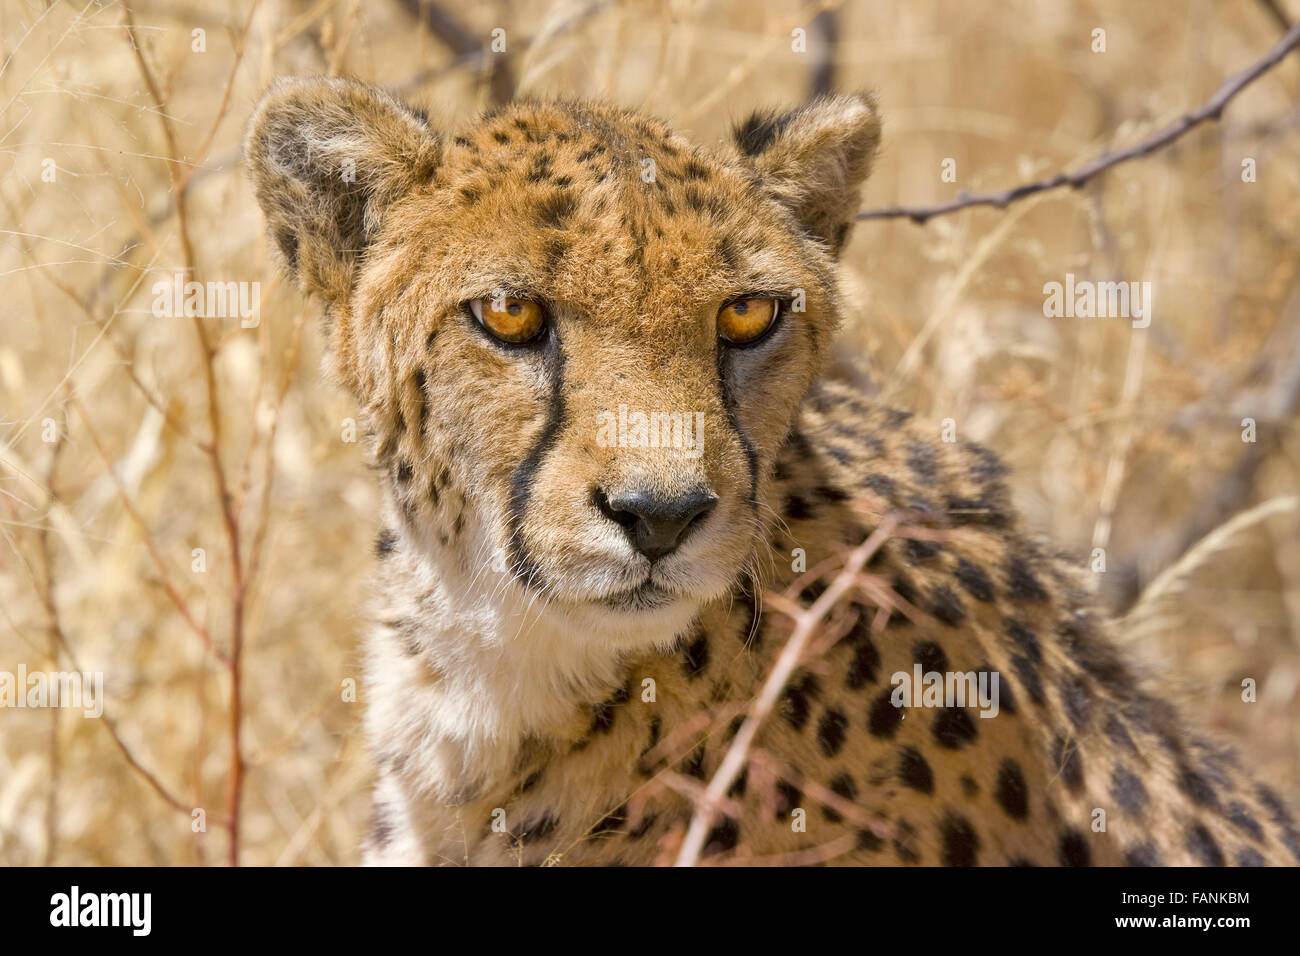 Cheetah looking direct at camera, big eyes, surrounded by bush - Stock Image